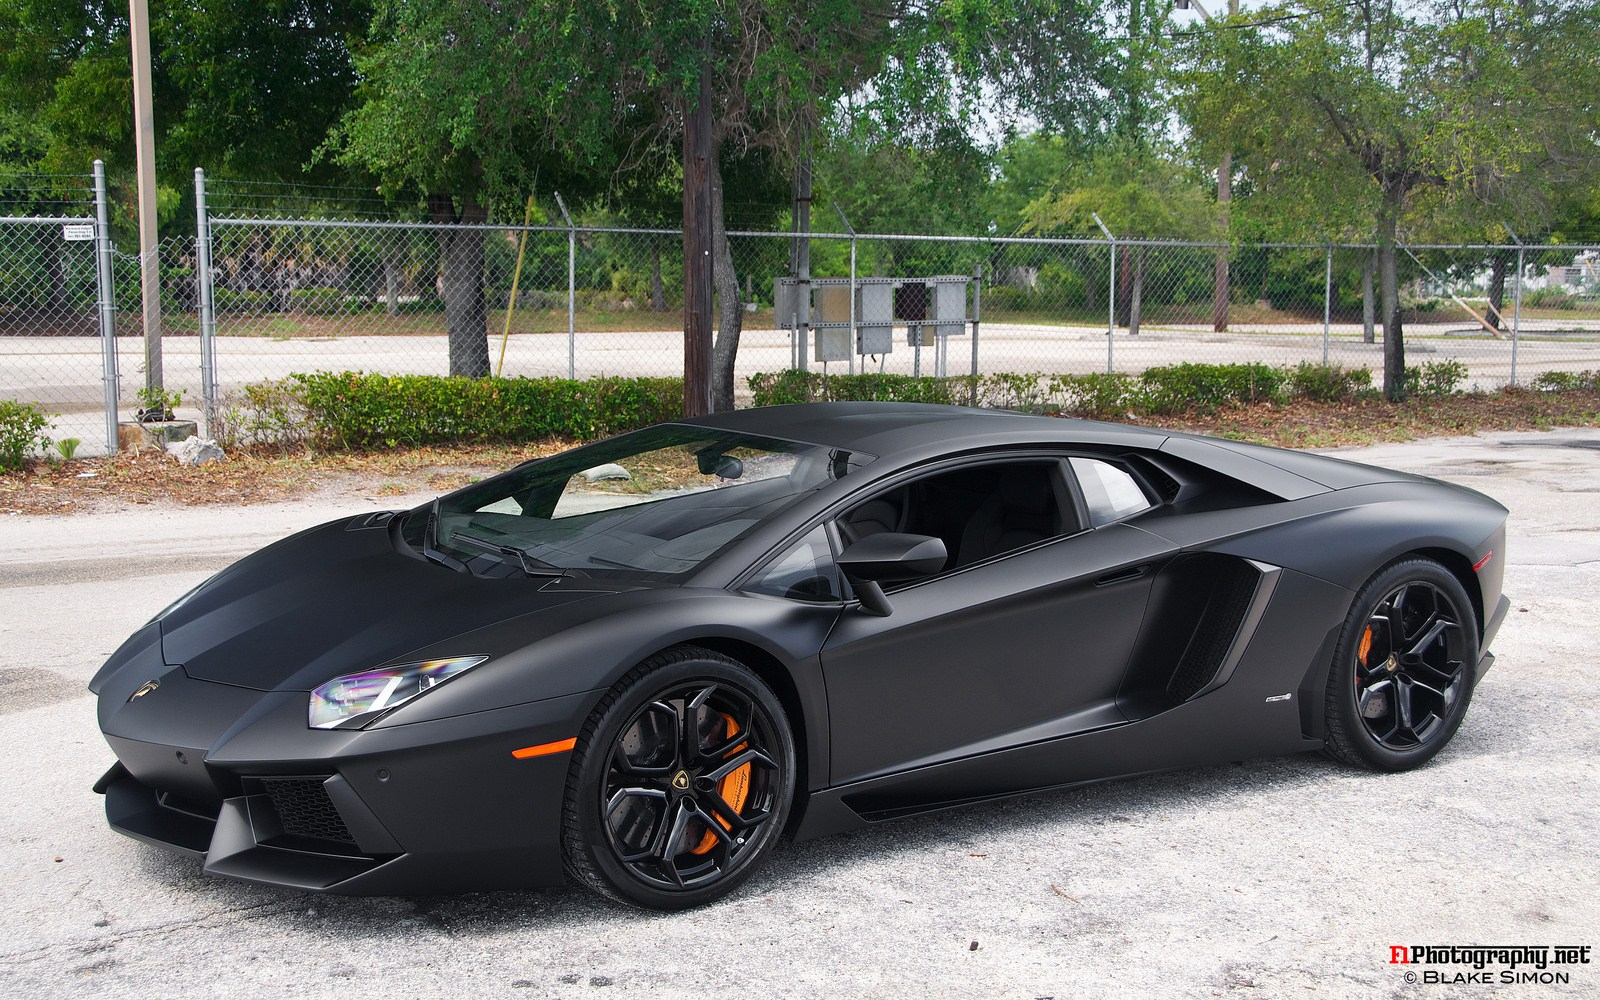 black lamborghini aventador important wallpapers. Black Bedroom Furniture Sets. Home Design Ideas